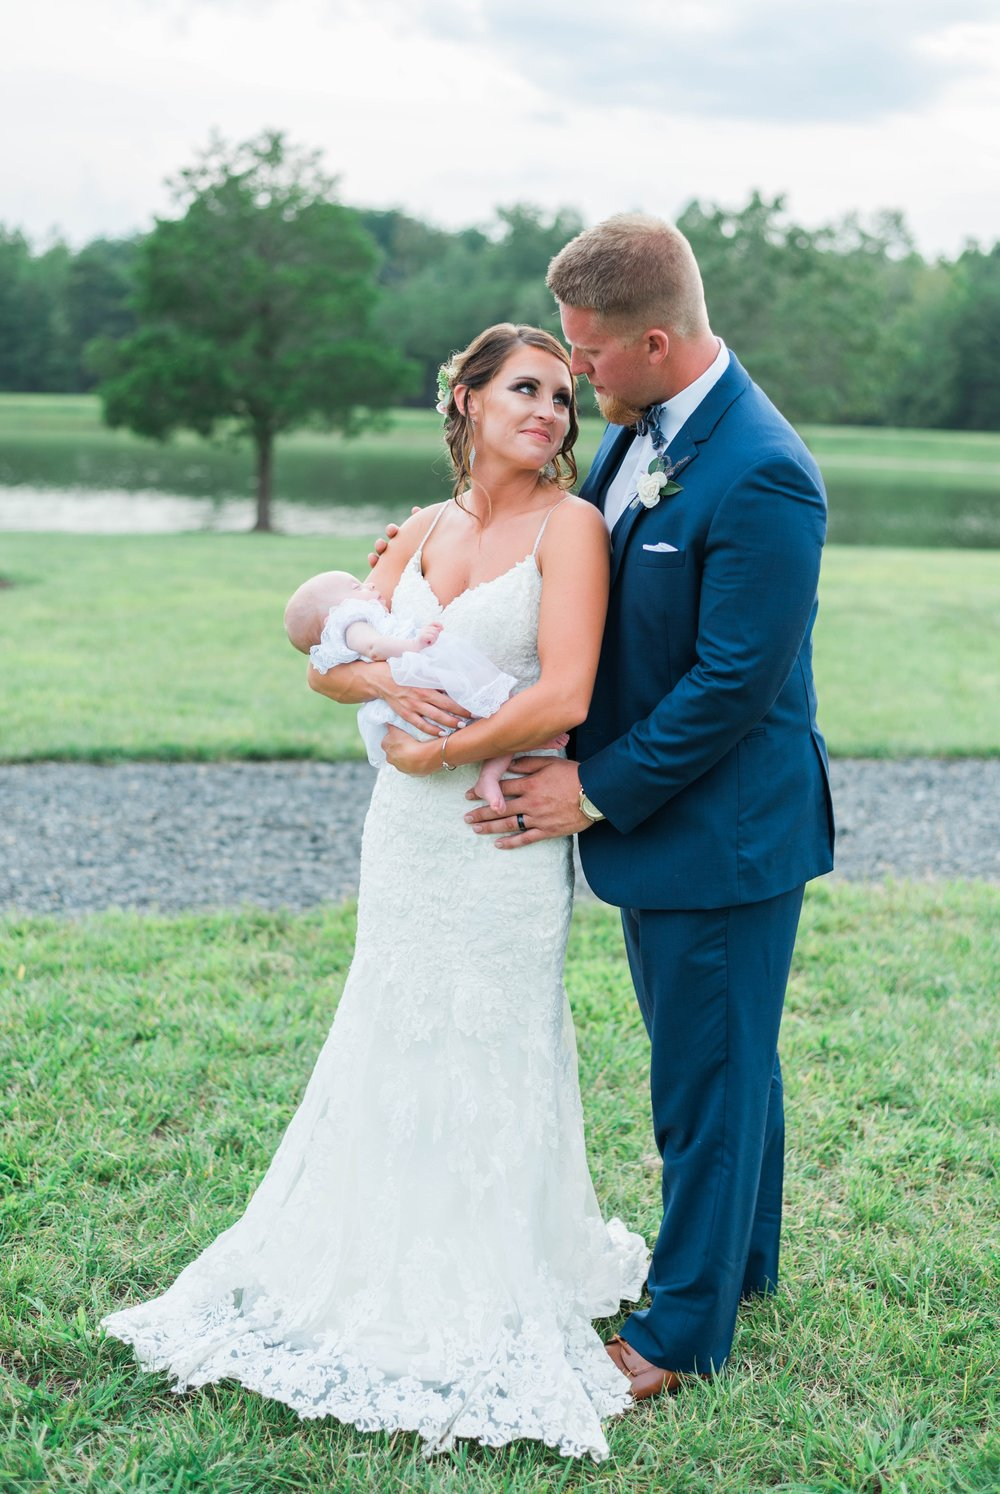 atkinson farms_VirginiaWeddingPhotographer_LynchburgWeddingPhotographer_DylanandLauren 6.jpg